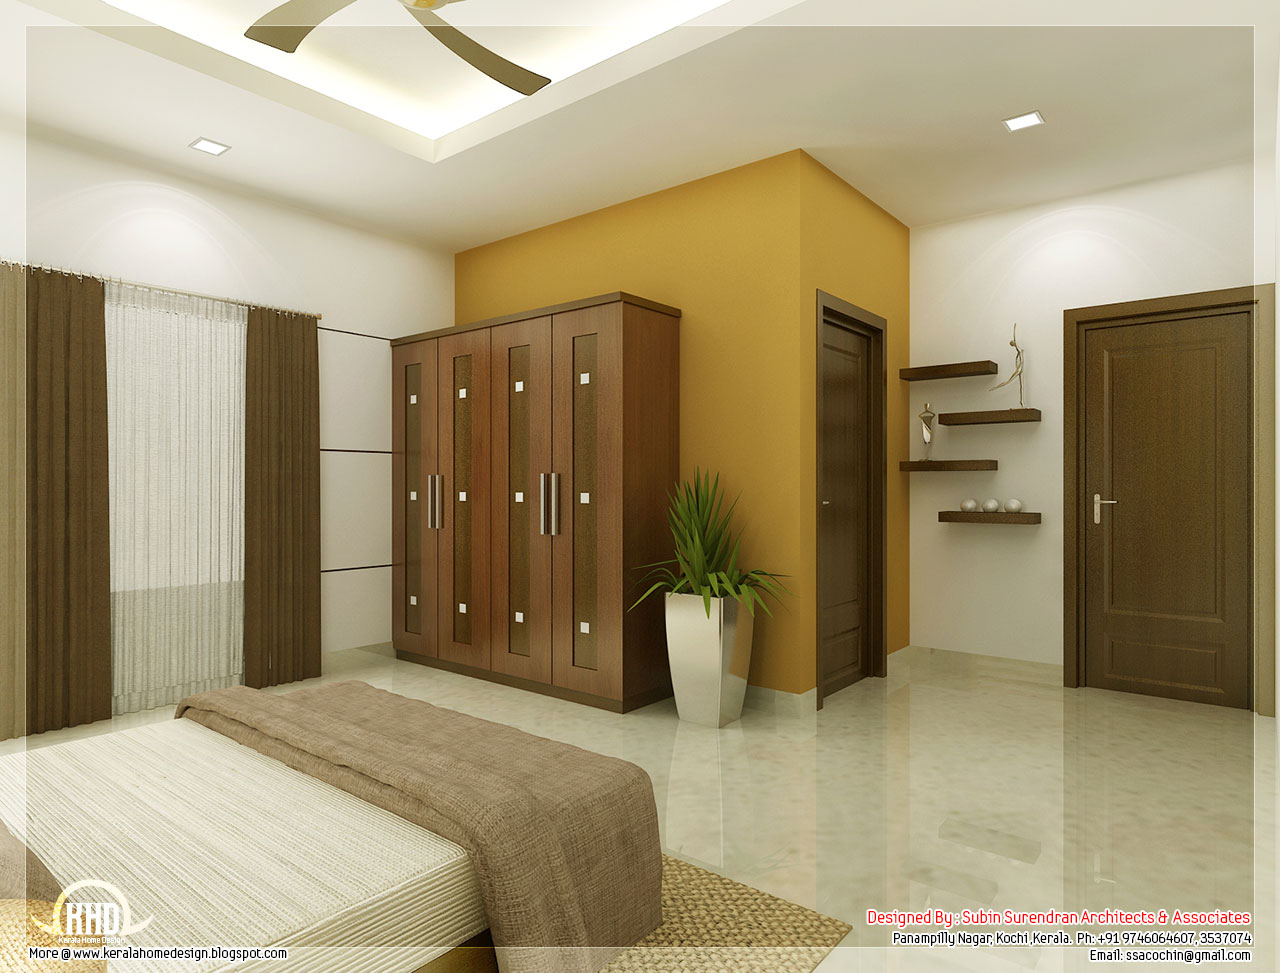 Beautiful bedroom interior designs kerala house design for Interior home design bedroom ideas